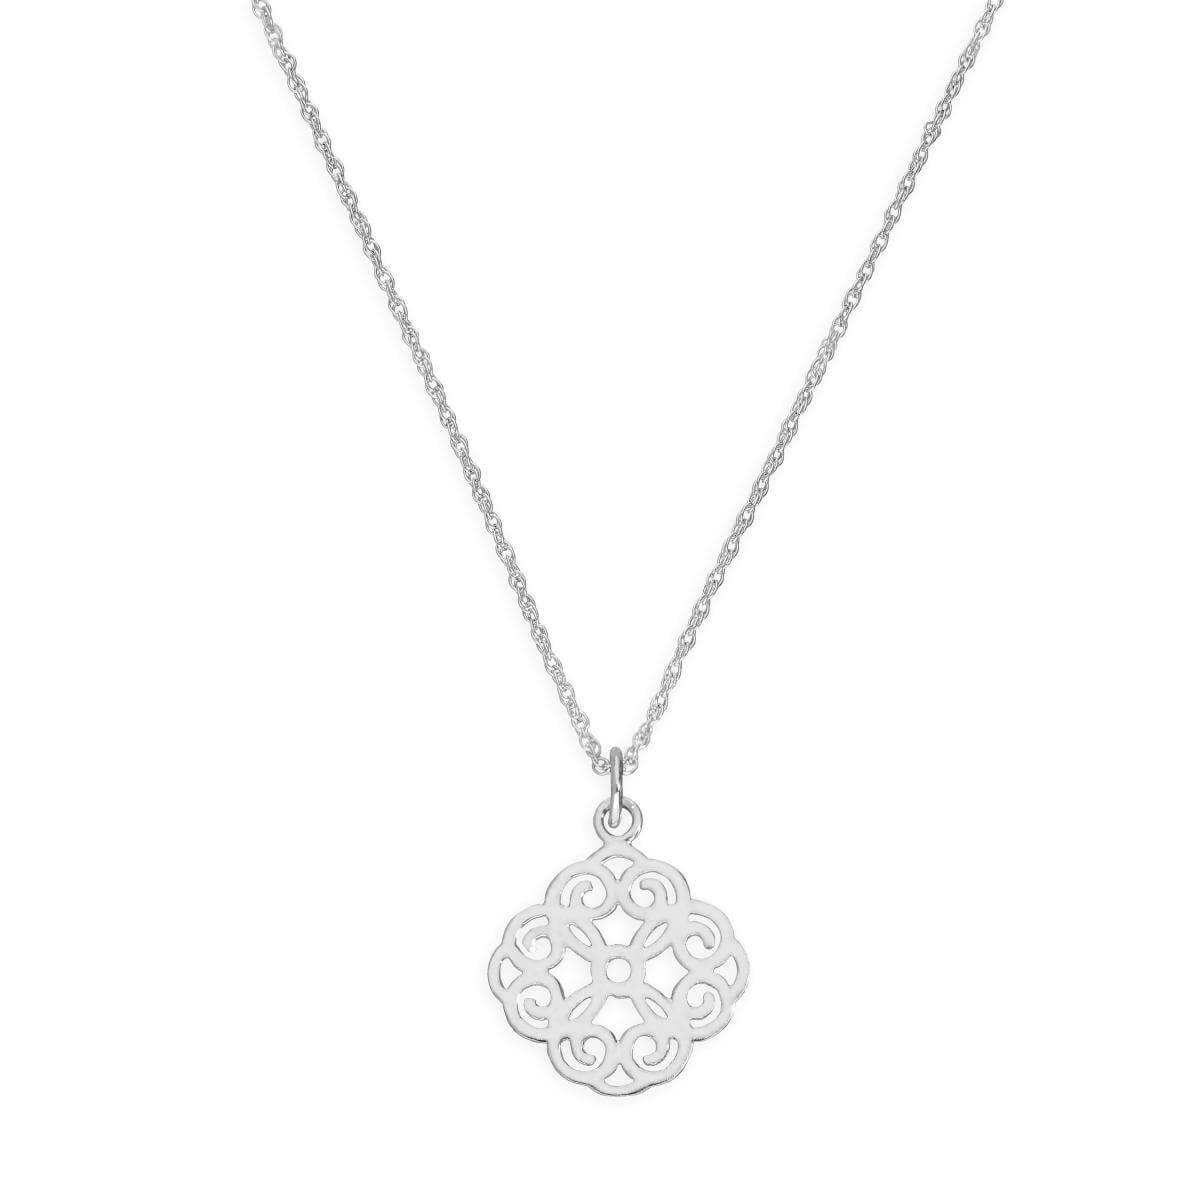 Sterling Silver Large Open Flower Pendant Necklace 14 - 22 Inches